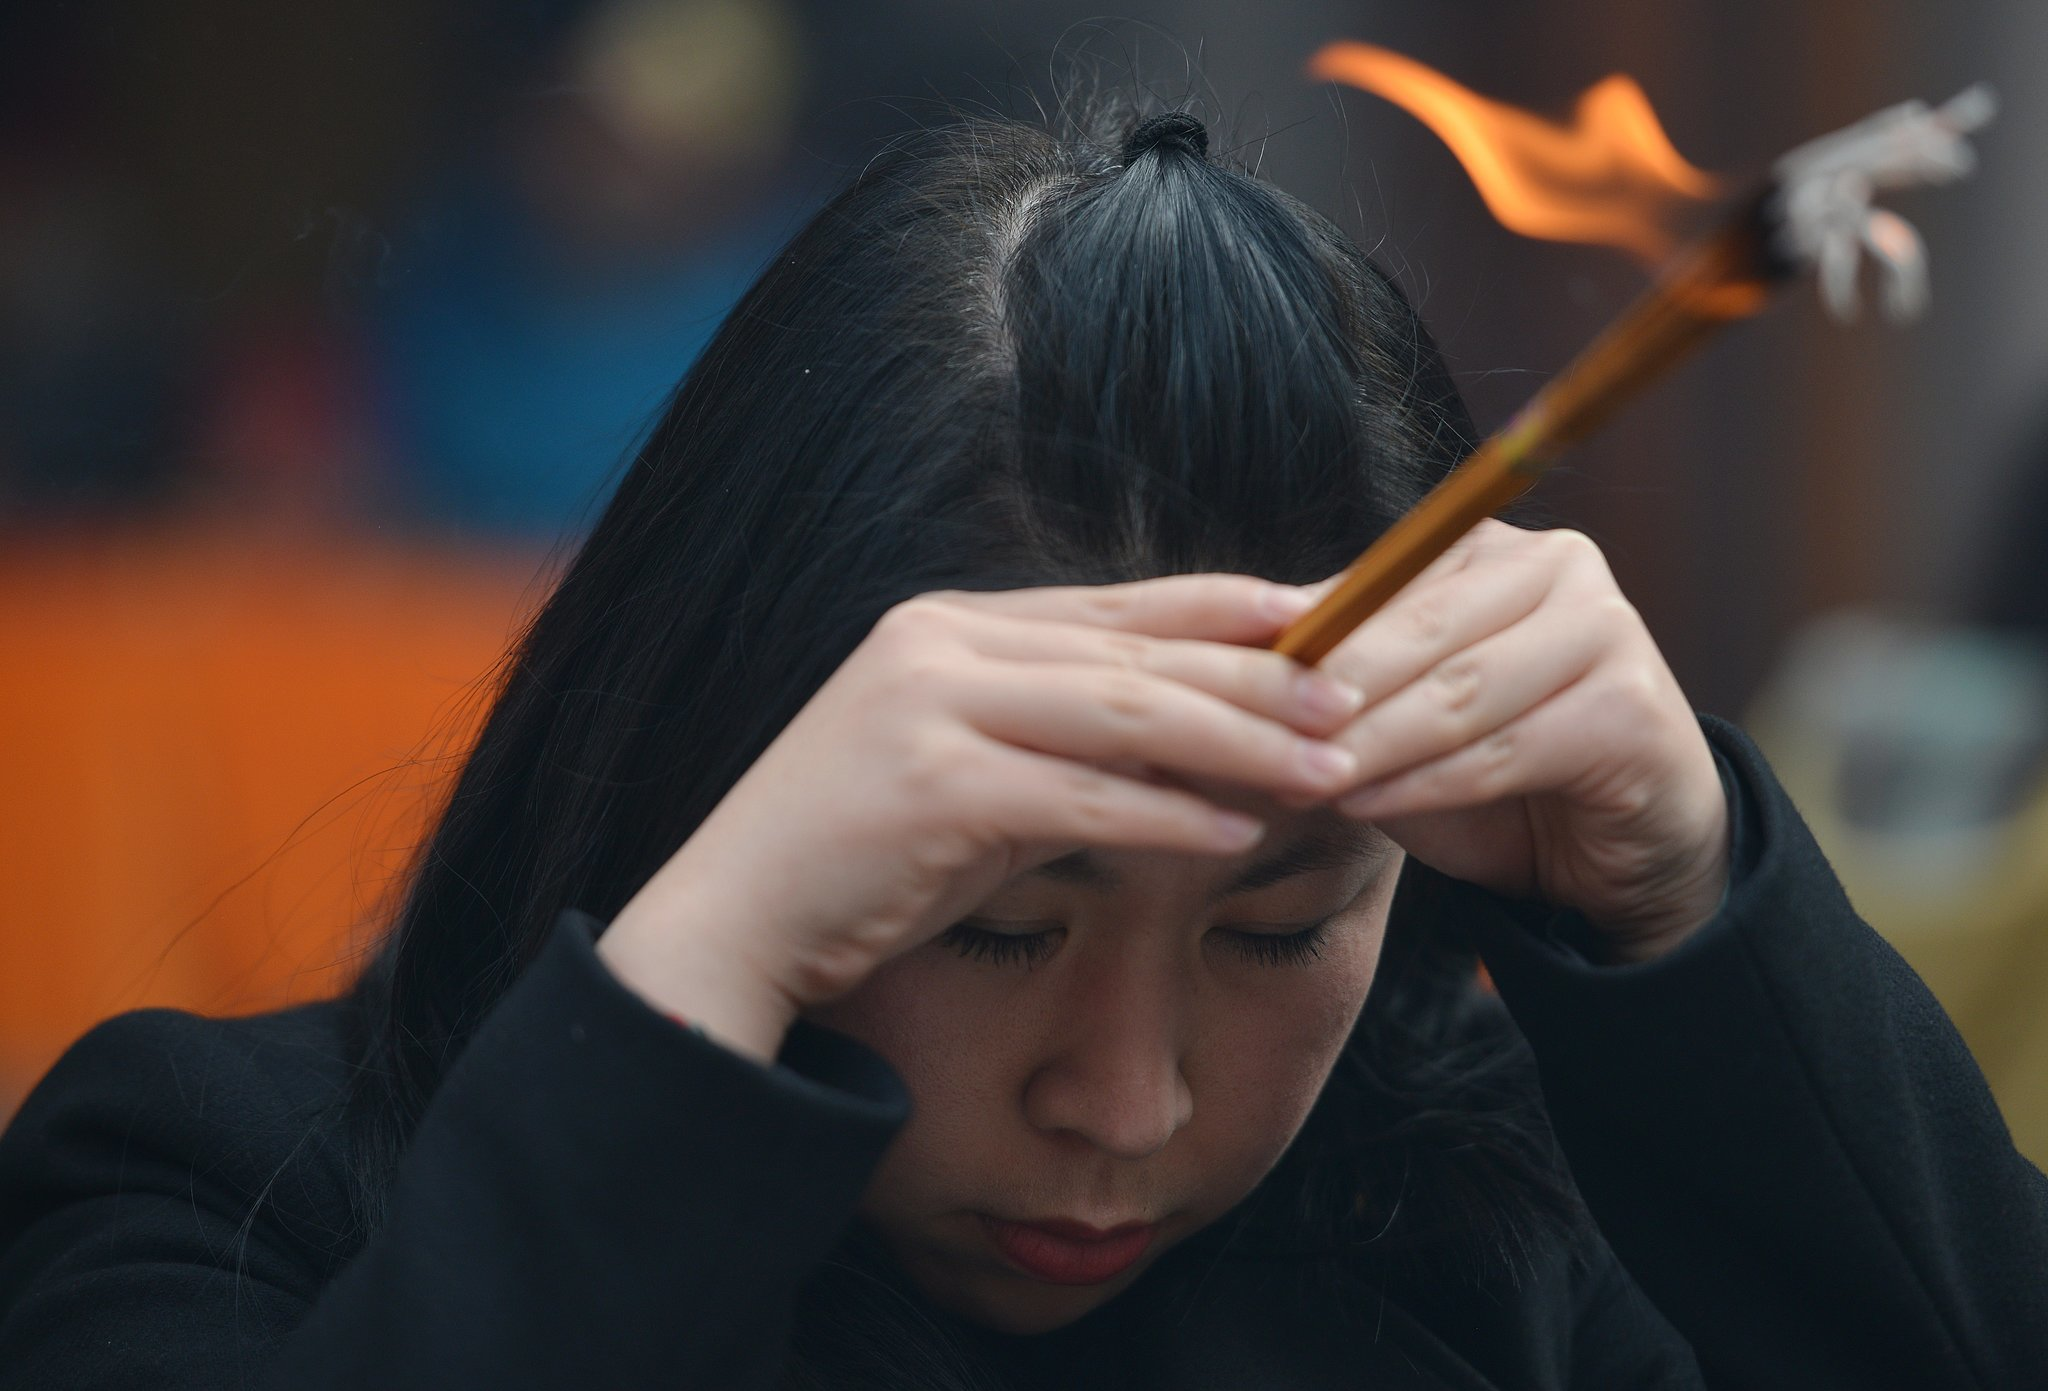 A woman carried incense as part of the prayer traditions.